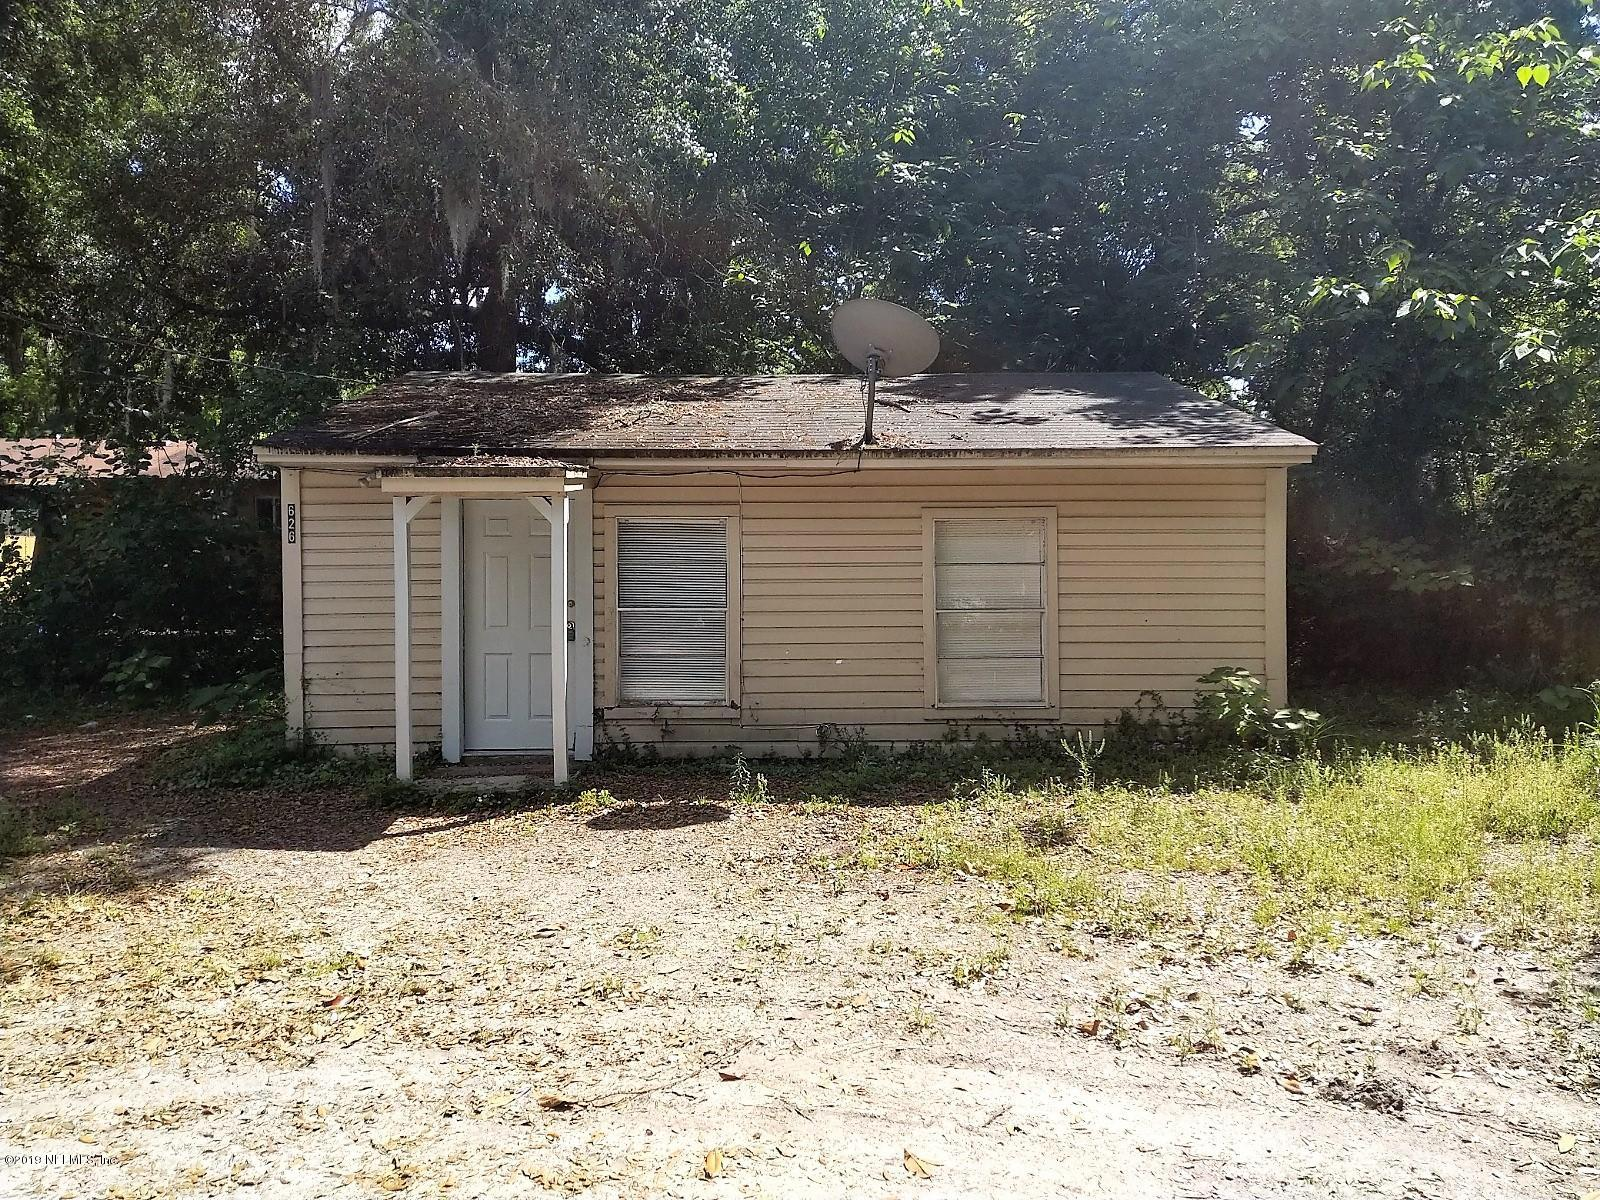 626 56TH, JACKSONVILLE, FLORIDA 32208, 2 Bedrooms Bedrooms, ,1 BathroomBathrooms,Commercial,For sale,56TH,994042